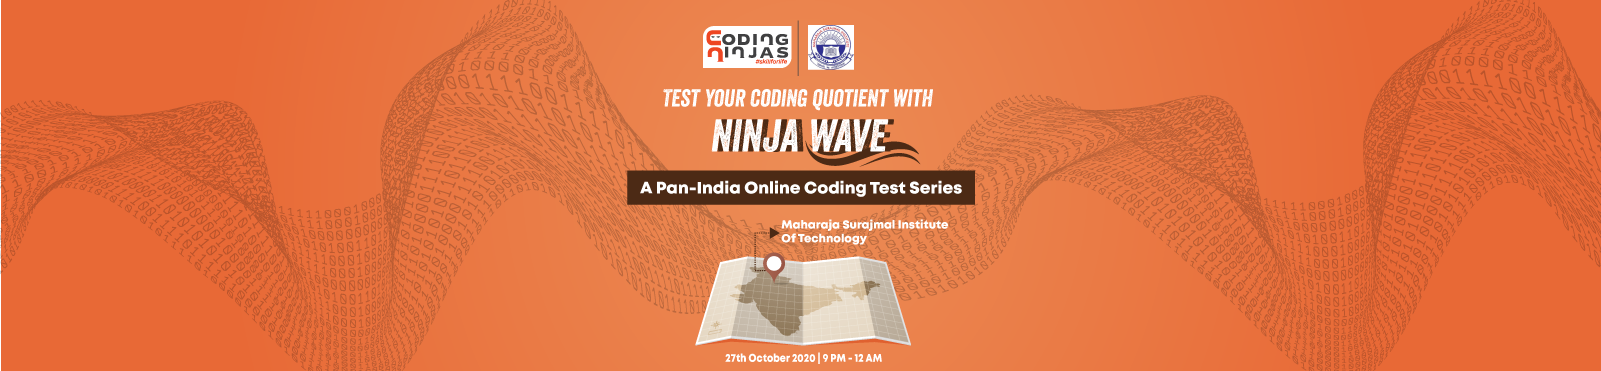 Ninja Wave at Maharaja Surajmal Institute Of Technology